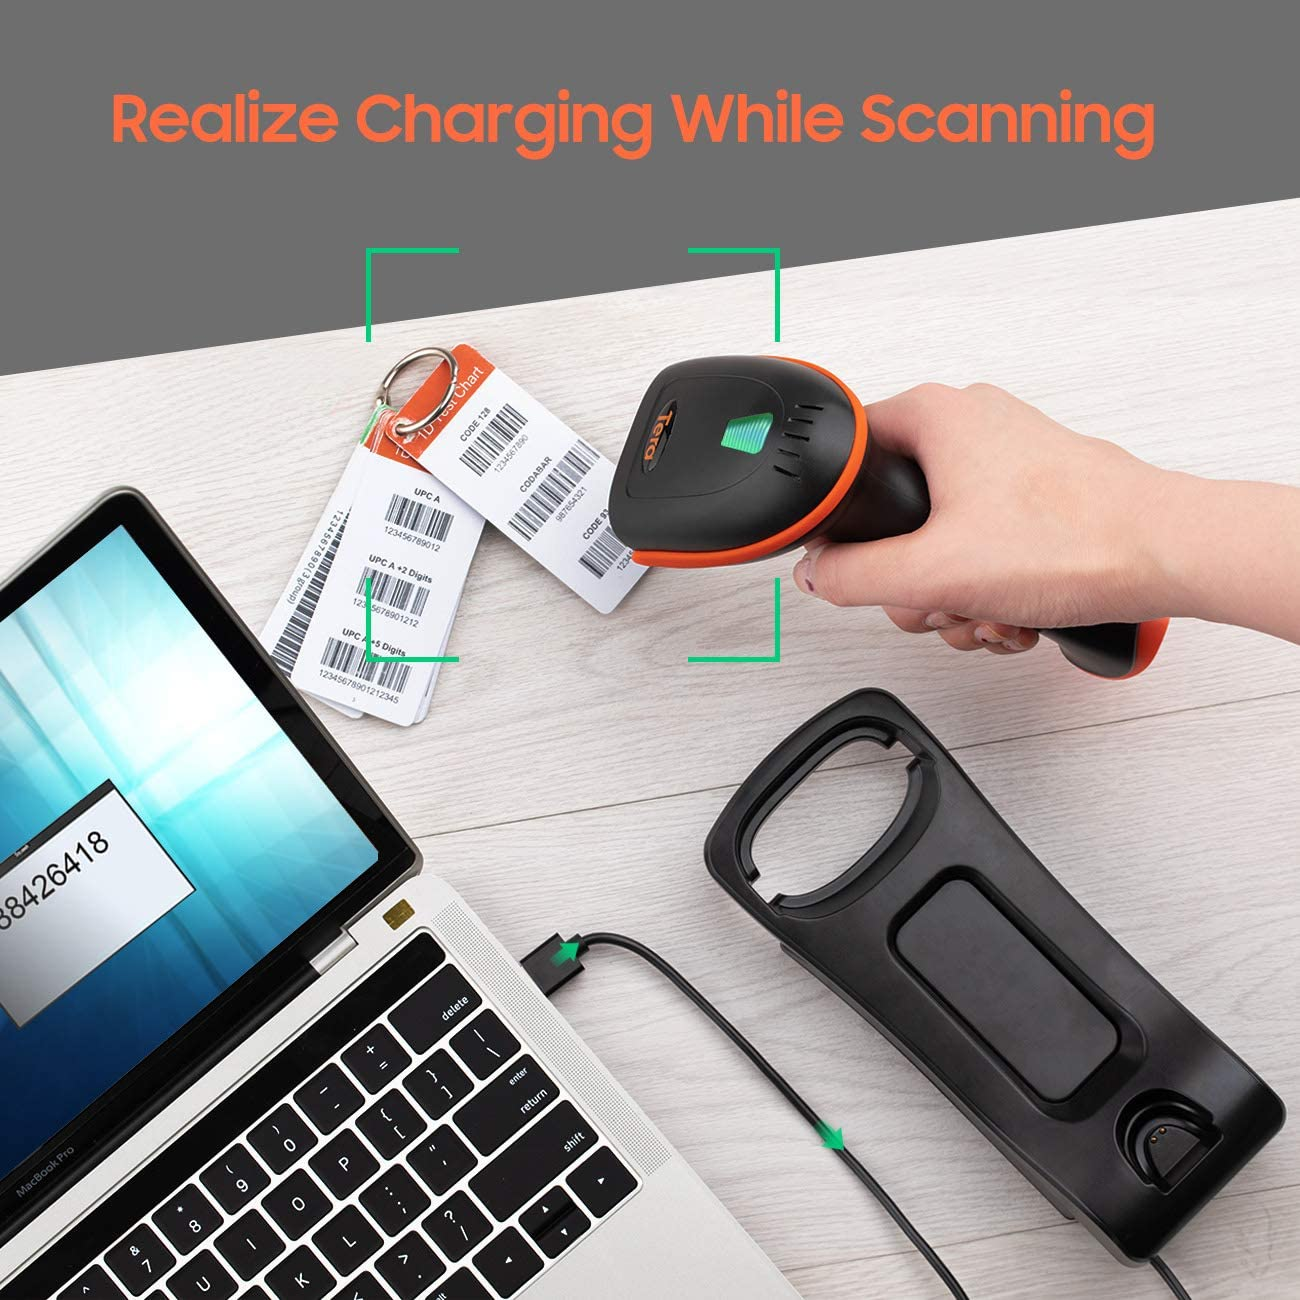 Tera 2D Barcode Scanner with Adjustable Folding Stand and Charging Cradle Wall Mountable 2.4G Wireless /& USB 2.0 Wired QR Bar Code Reader with Vibration Alert